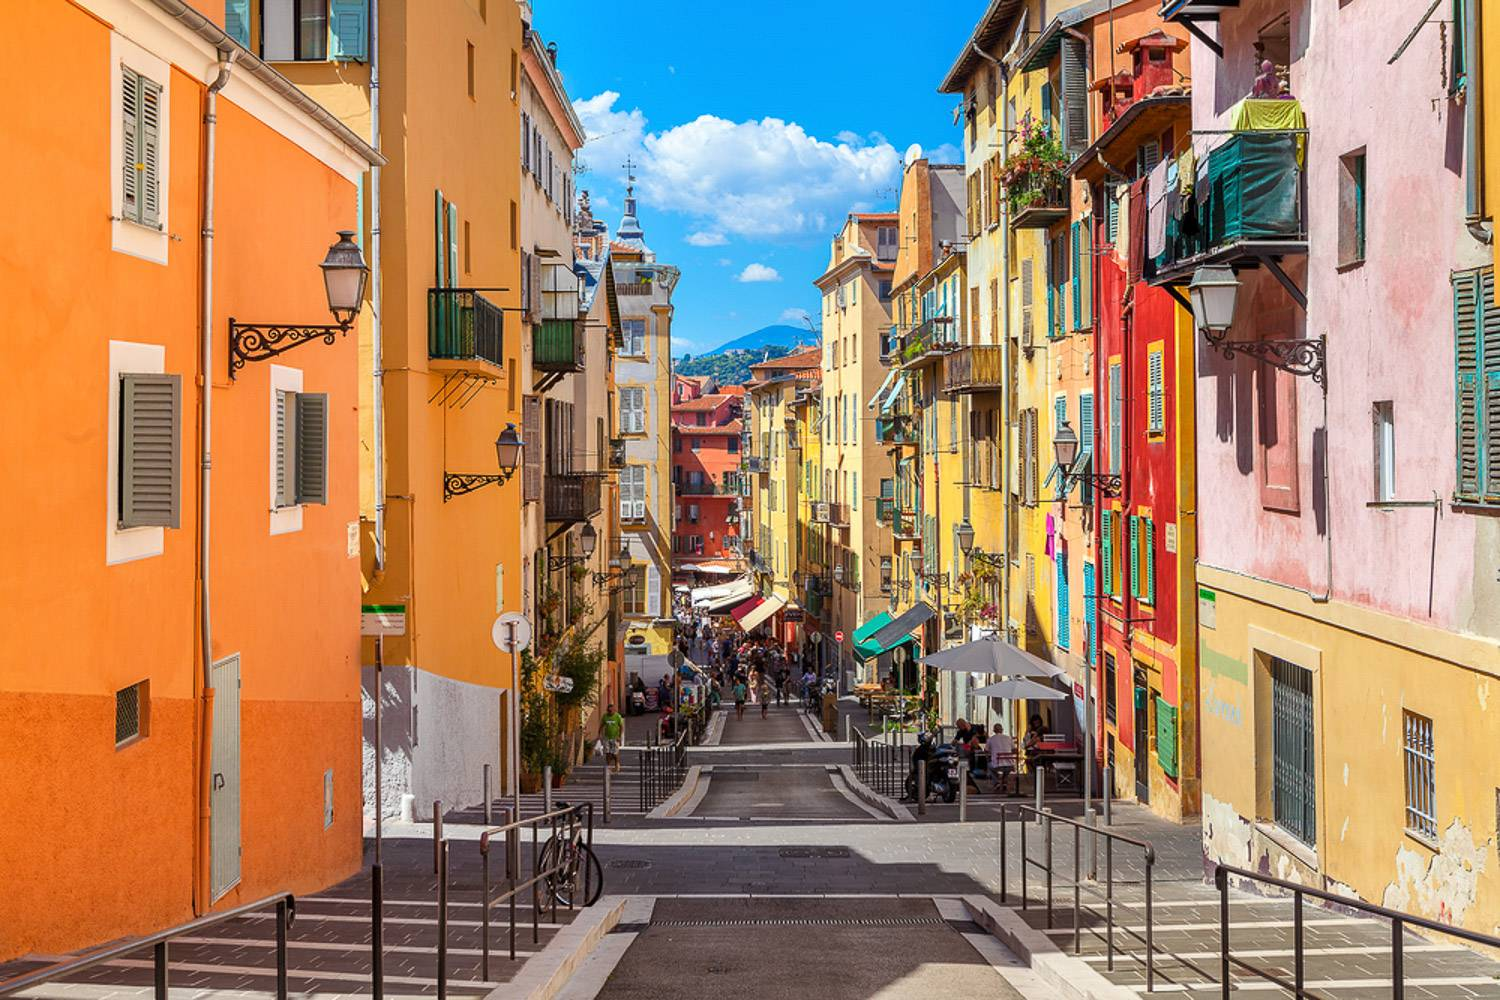 Image of a cobblestone street surrounded by colorful buildings in Old Nice.